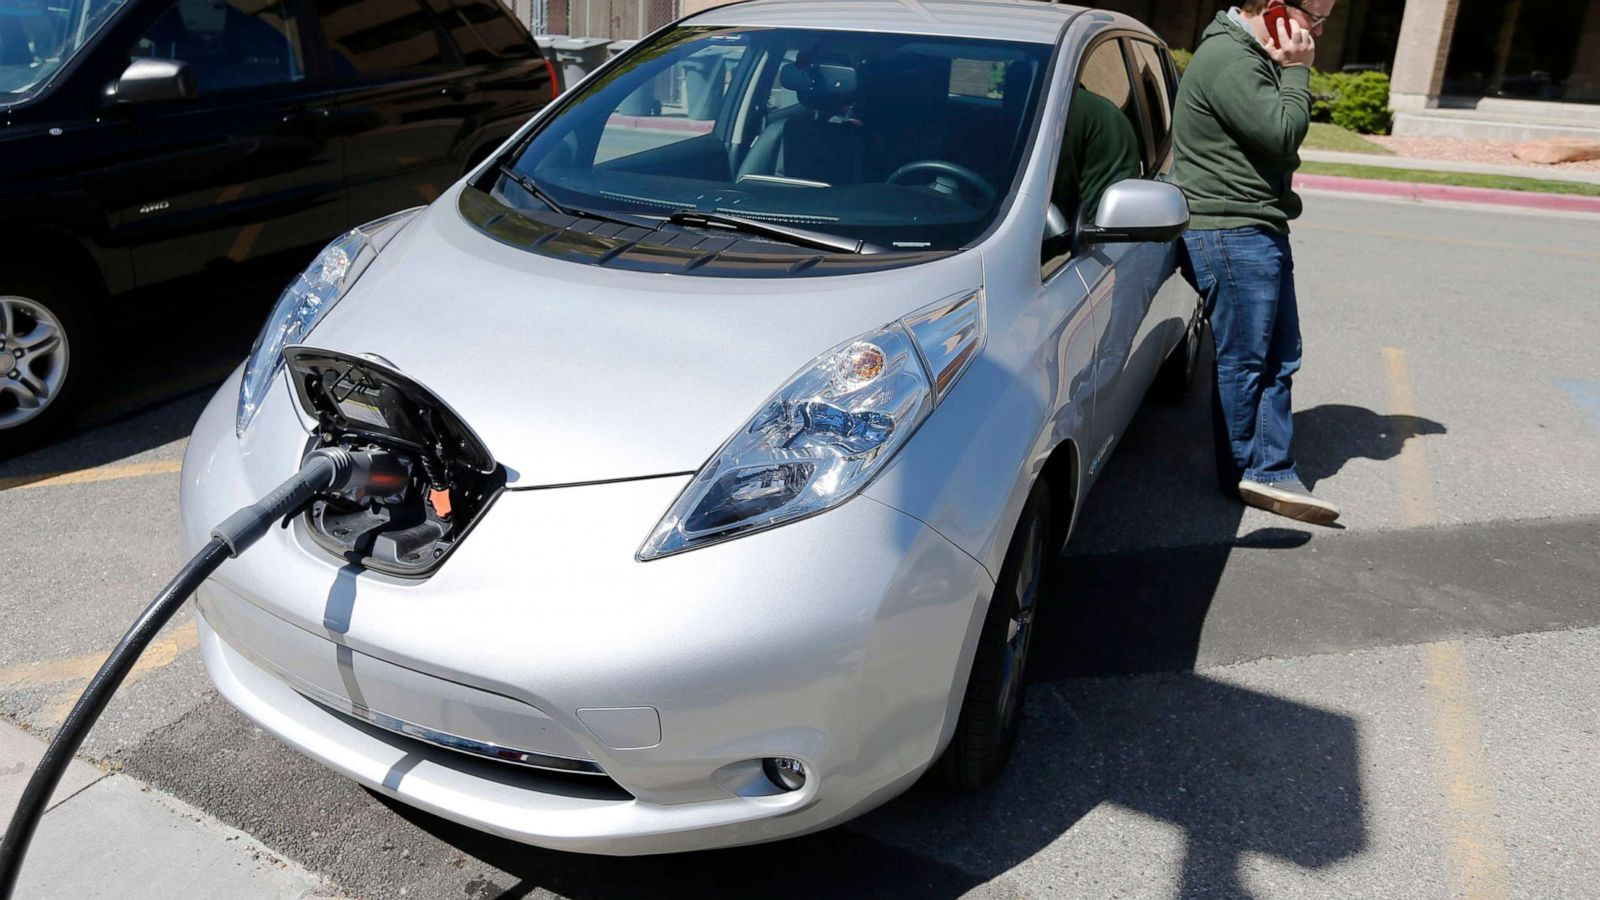 California targets 2035 for all new-car purchases to be zero-emission  vehicles - ABC News